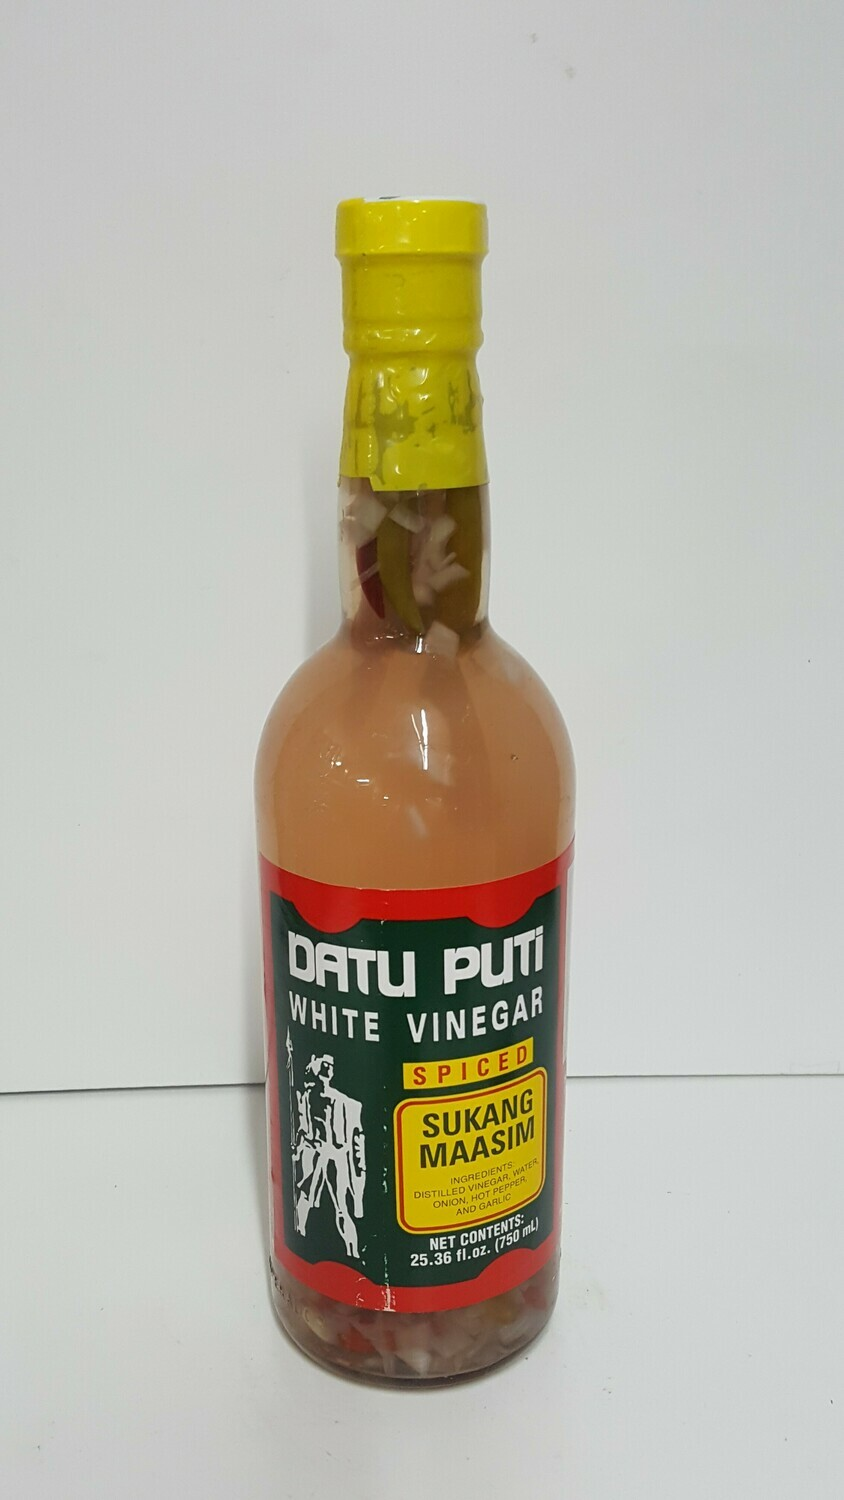 White Vinegar Spiced DATU PUTI 750 ml